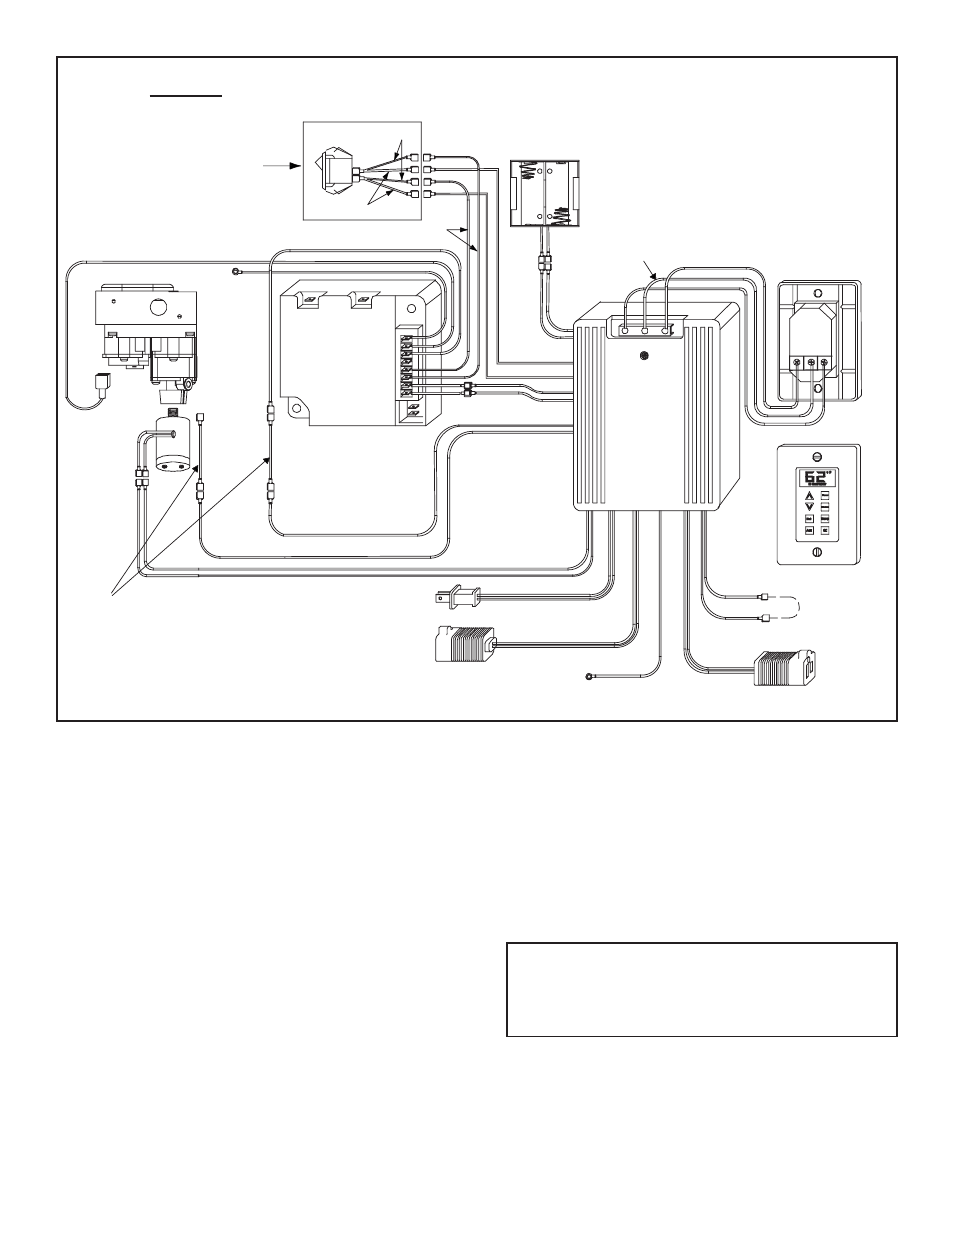 hight resolution of for units without factory installed rocker switch hearth and home technologies wsk mlt user manual page 4 7